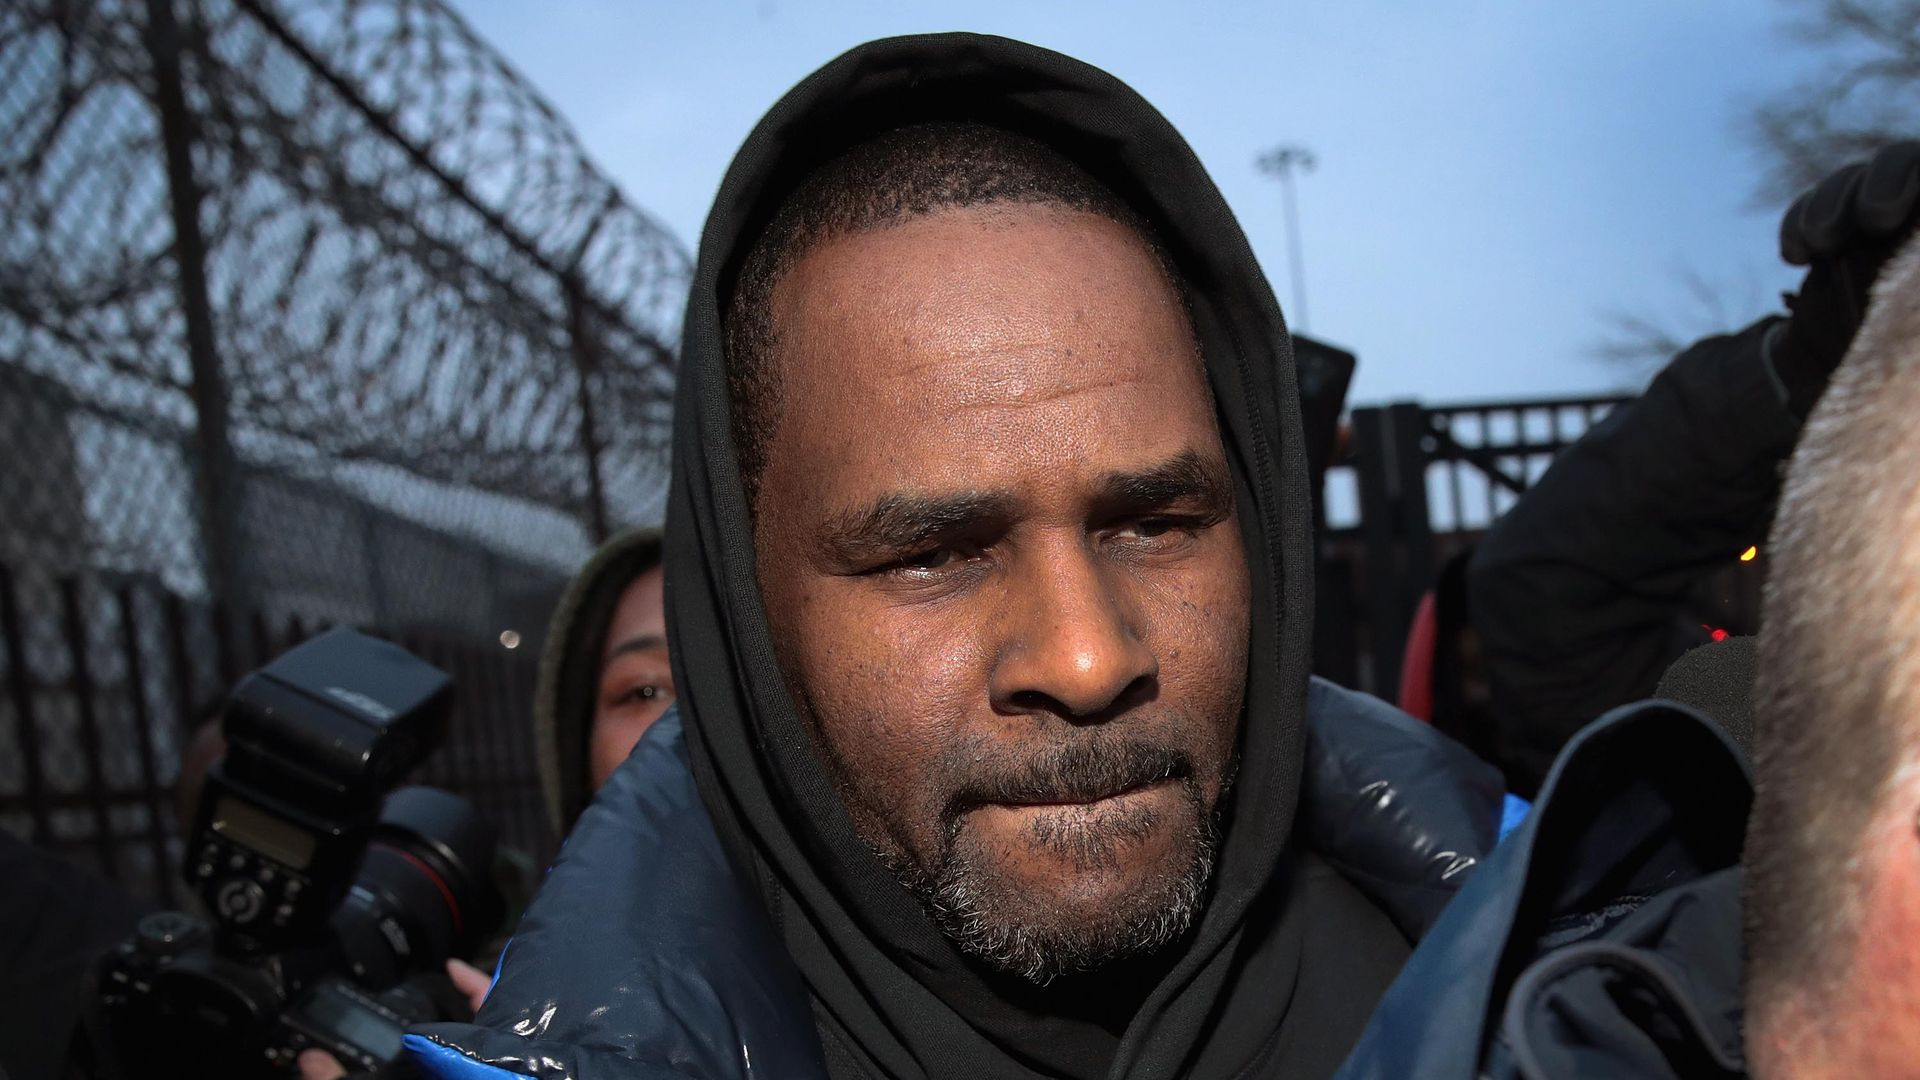 R. Kelly says the sexual abuse allegations are lies.